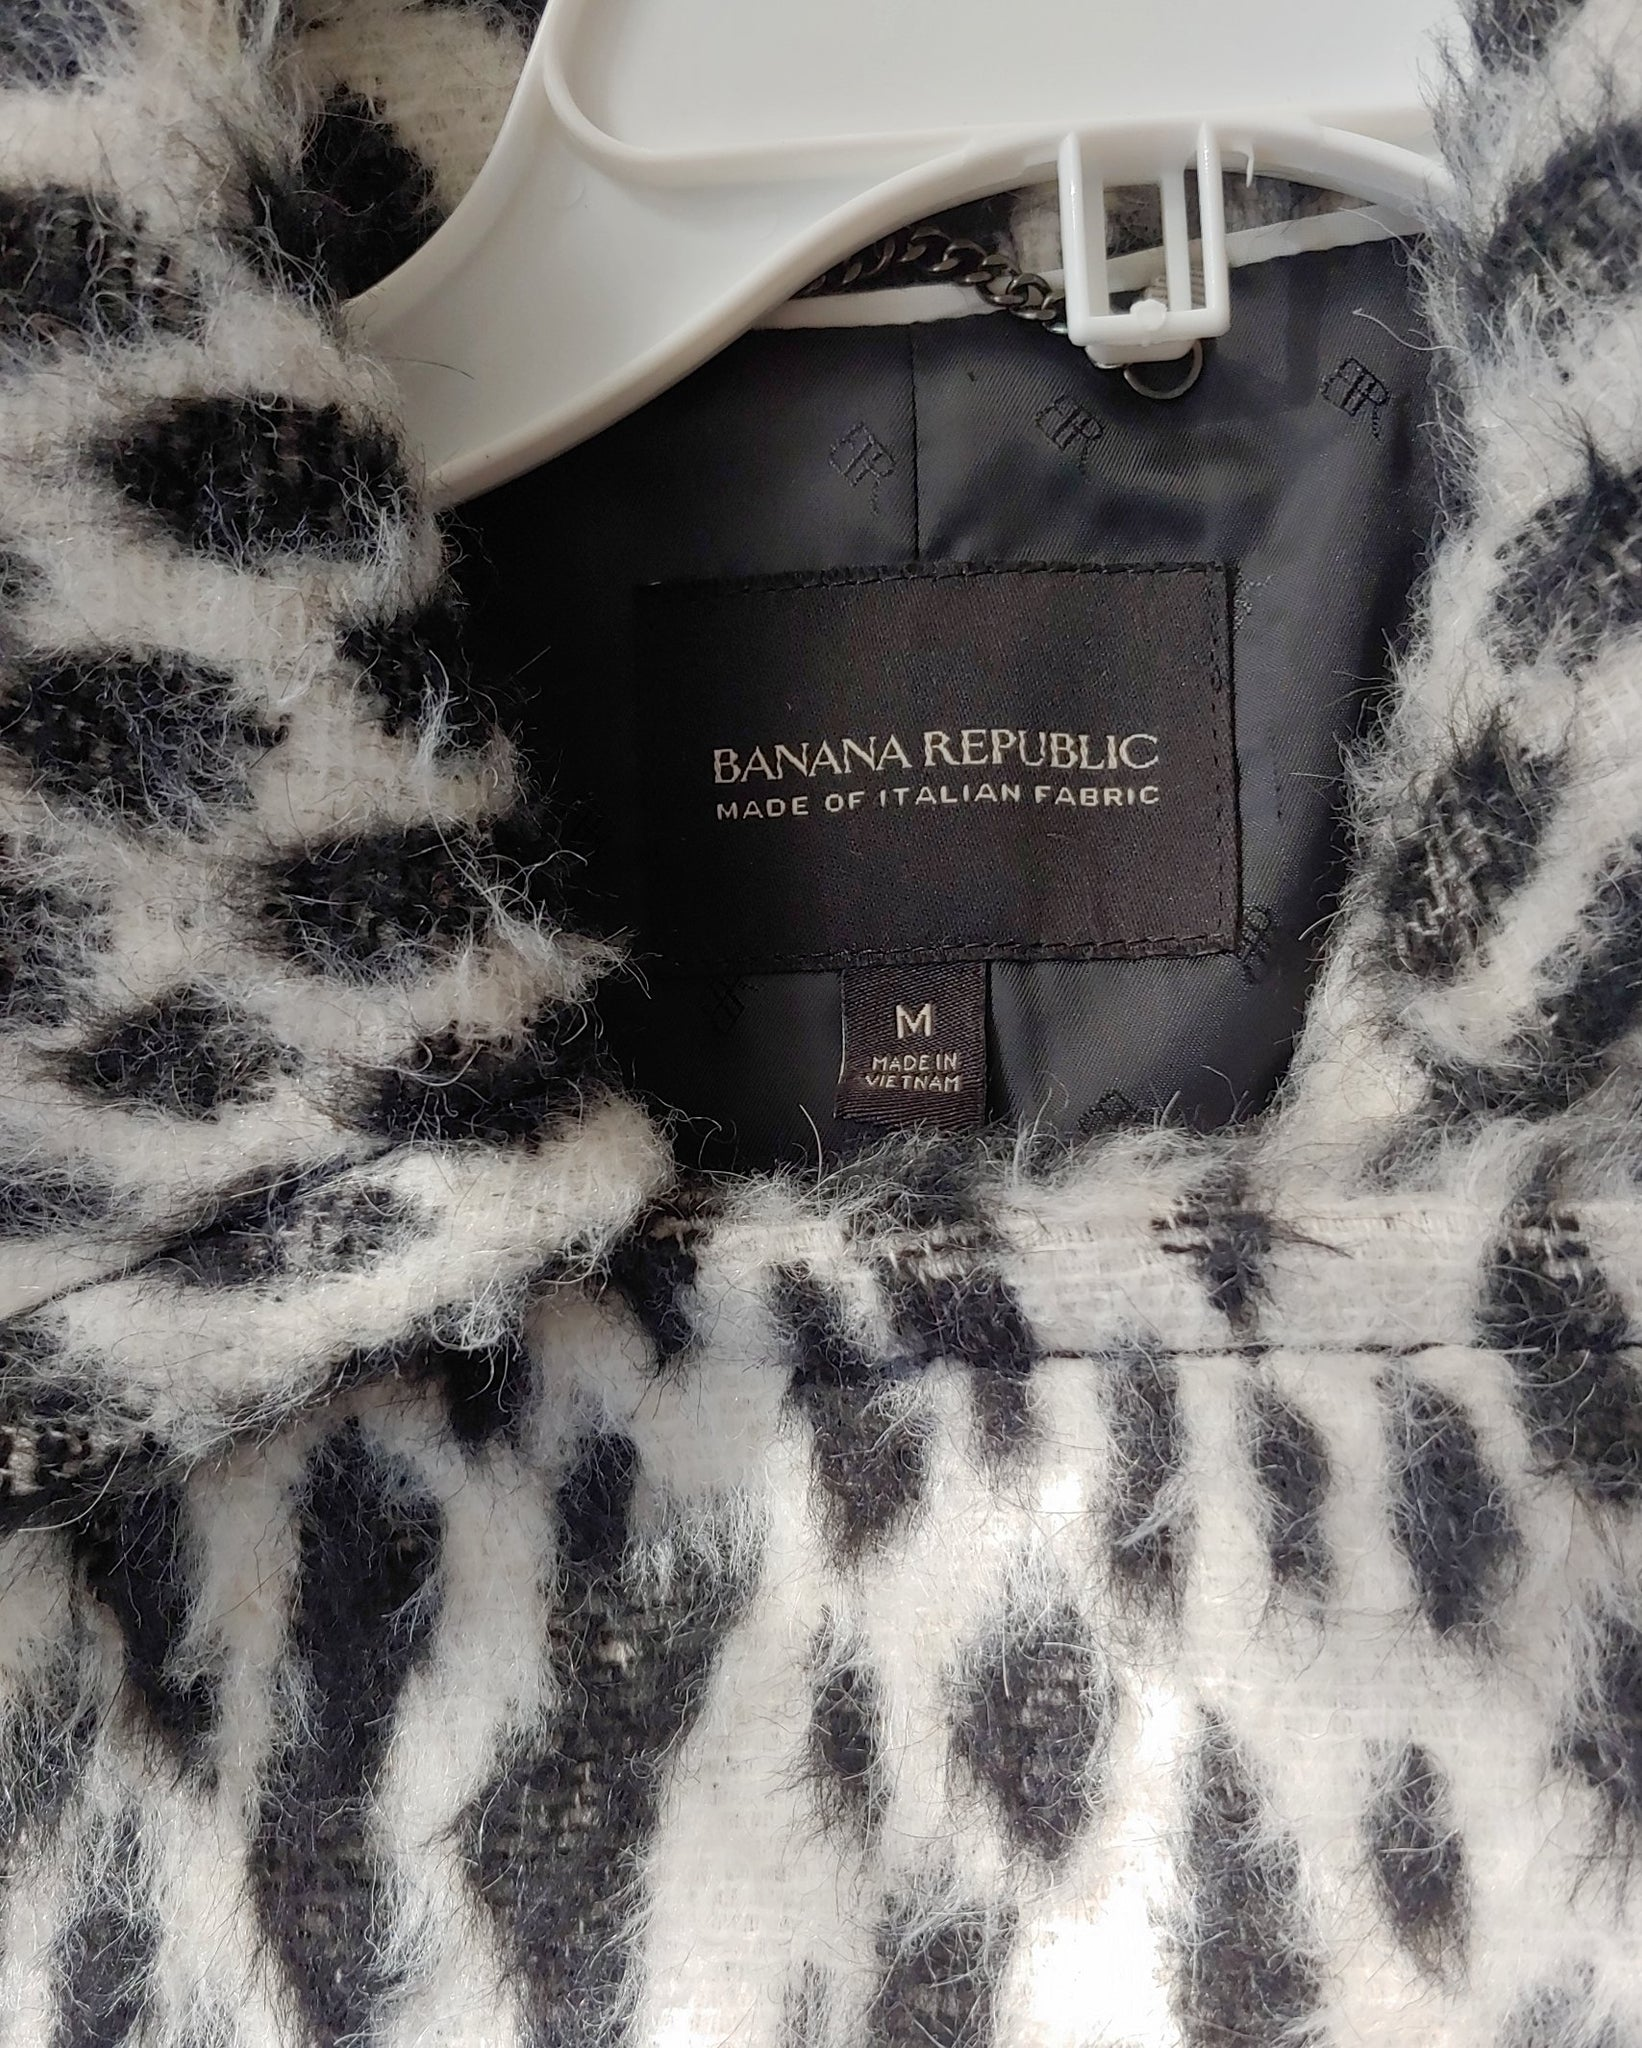 Black & White Banana Republic Jacket